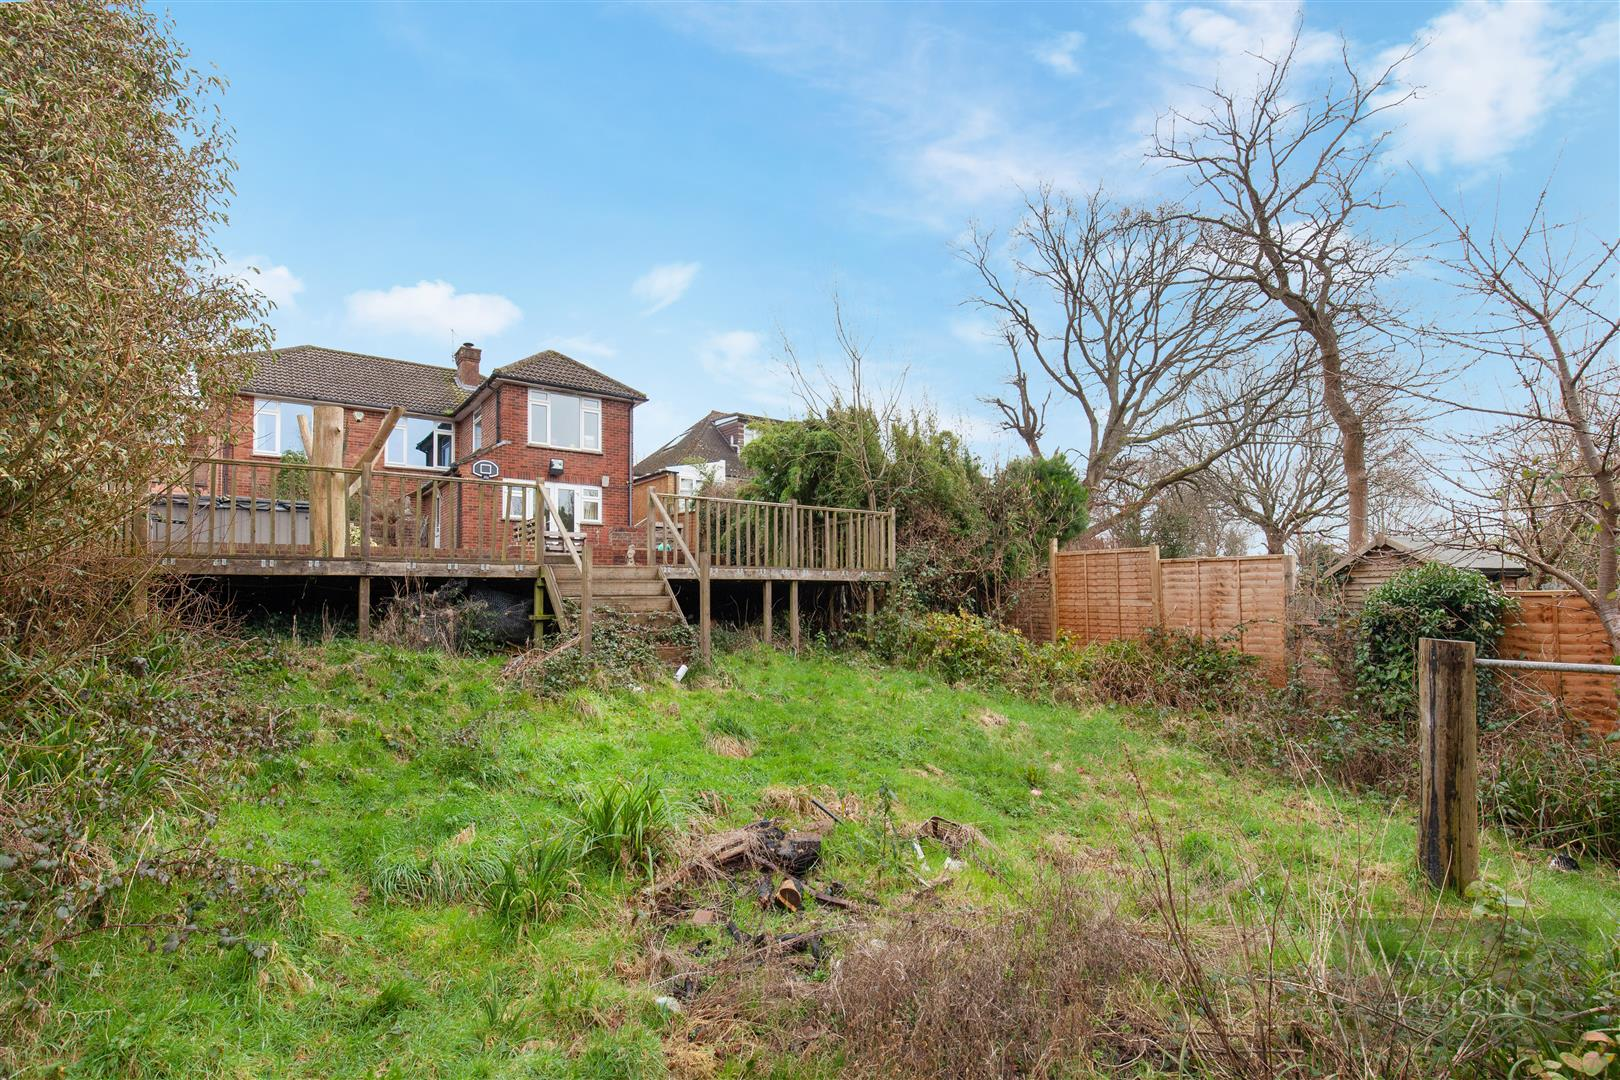 4 bed detached-bungalow for sale in Gorselands, Battle  - Property Image 25